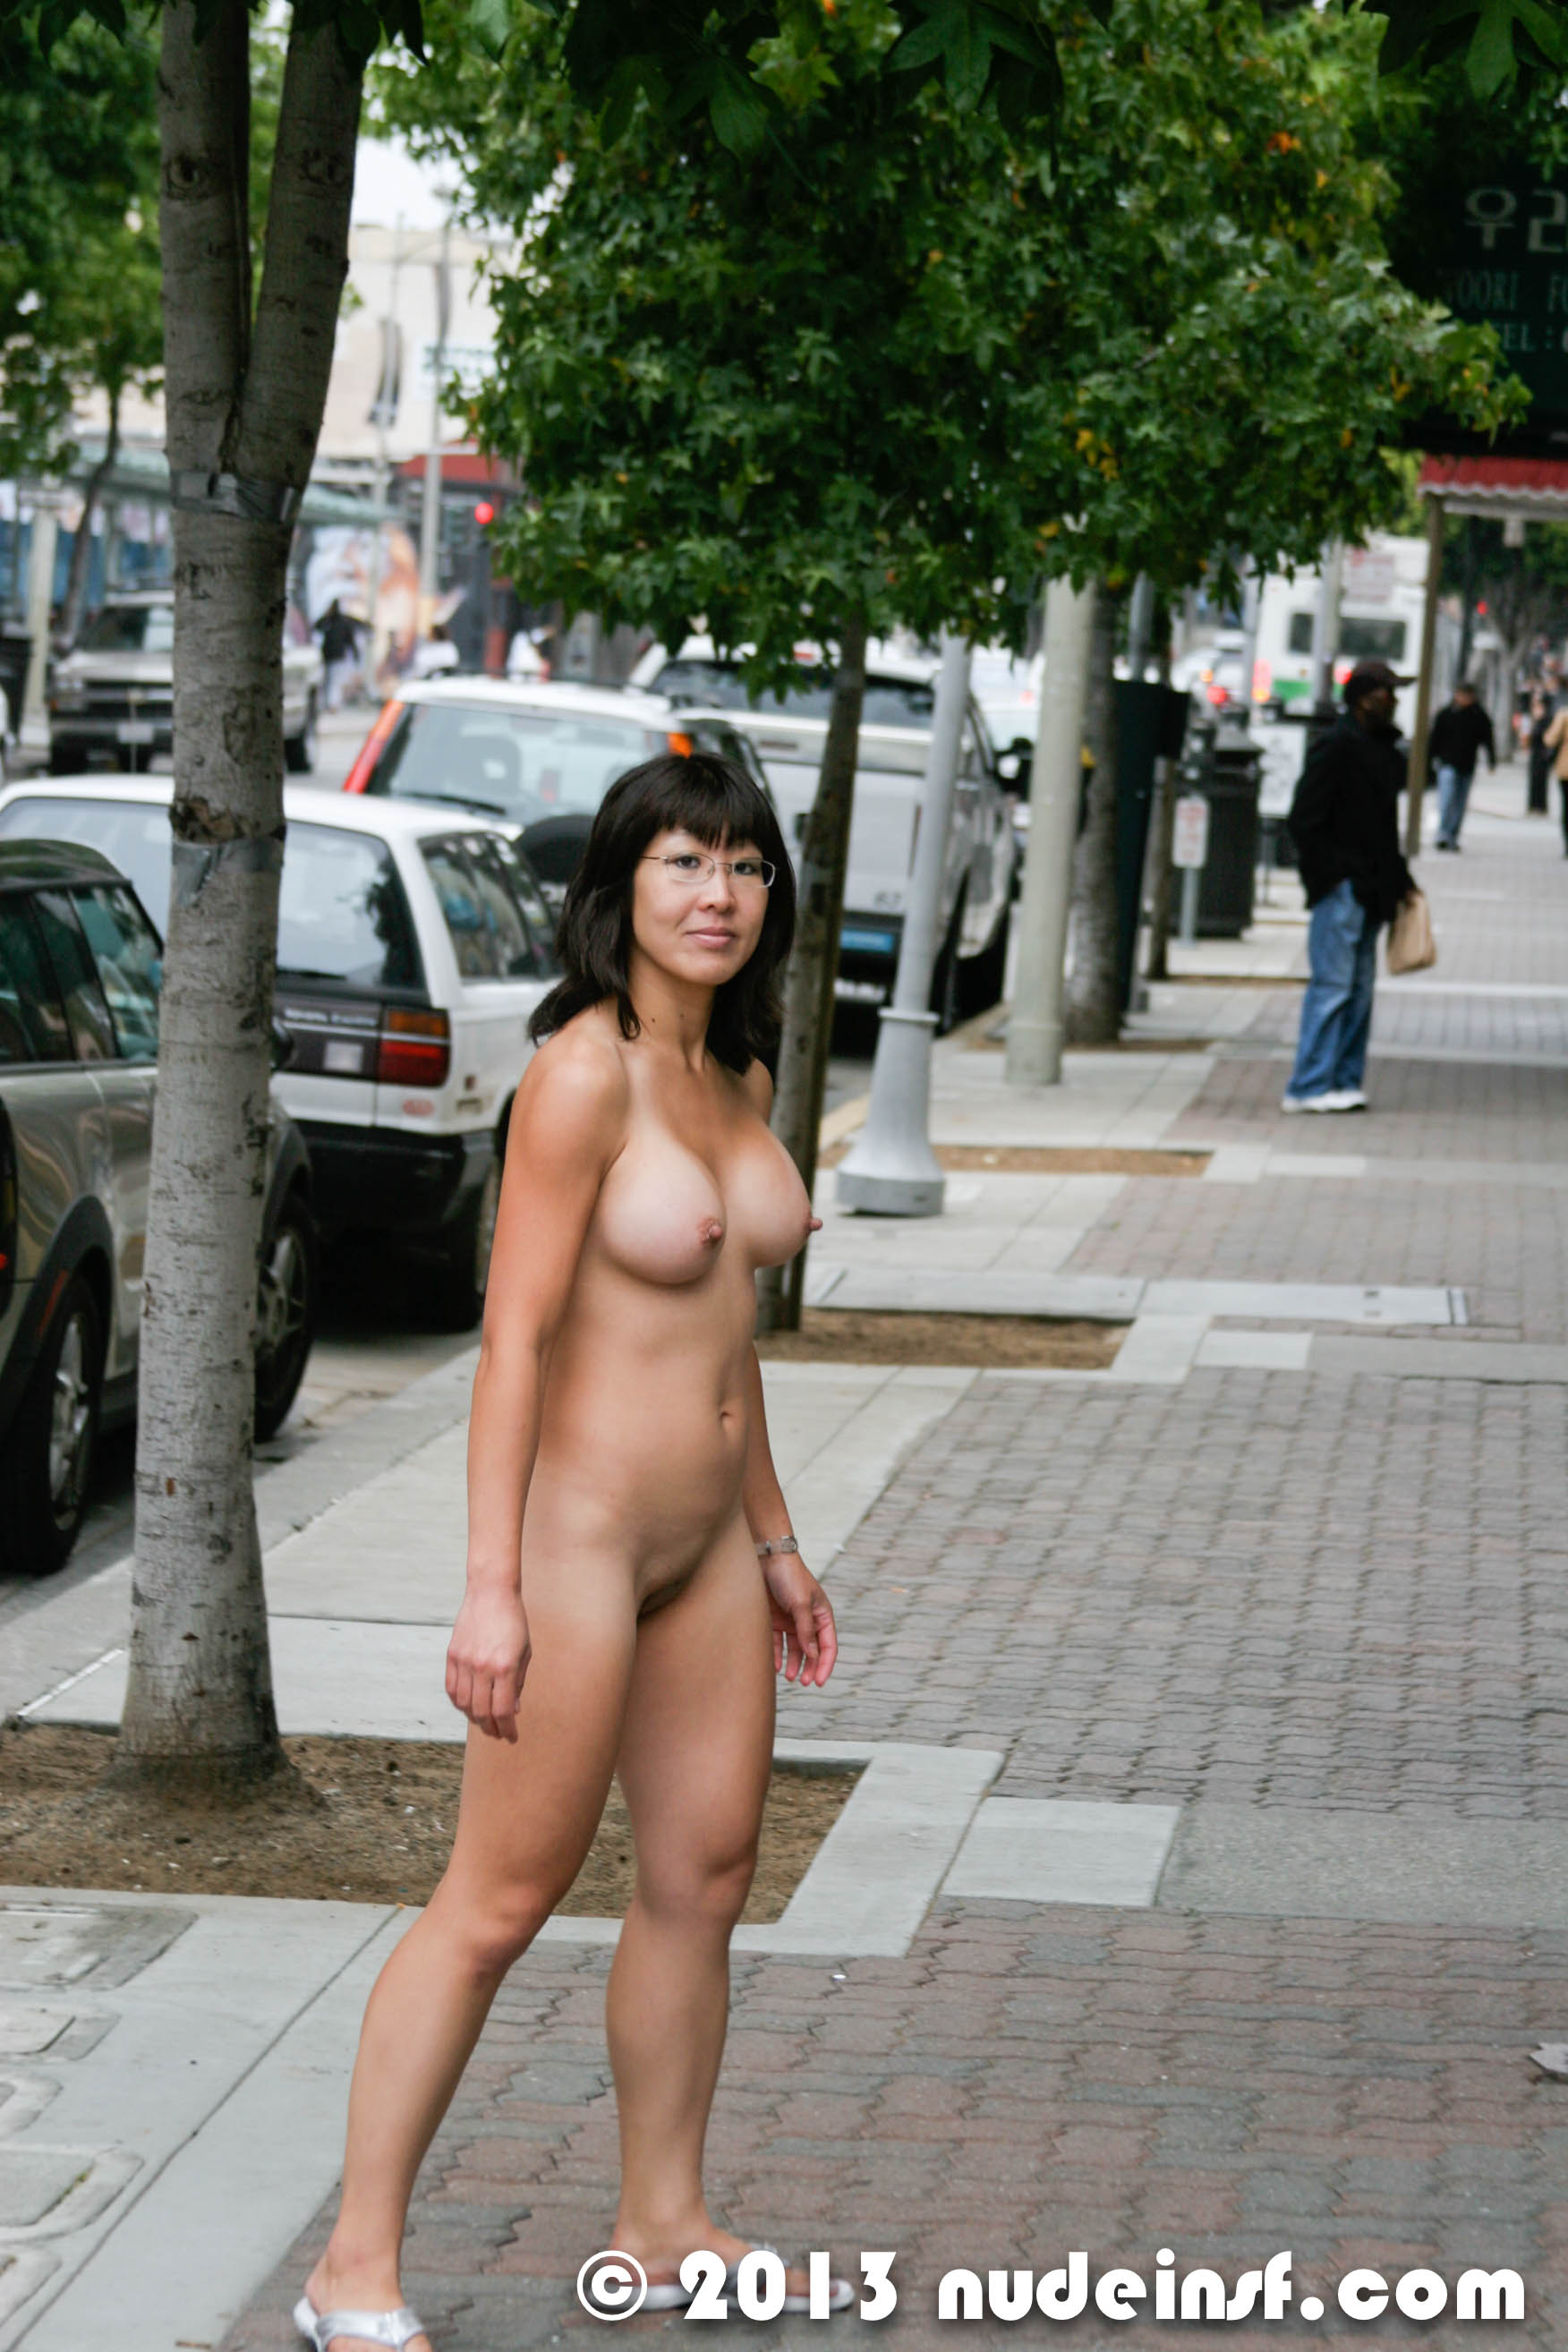 Final, sorry, Free nude walk in public pic